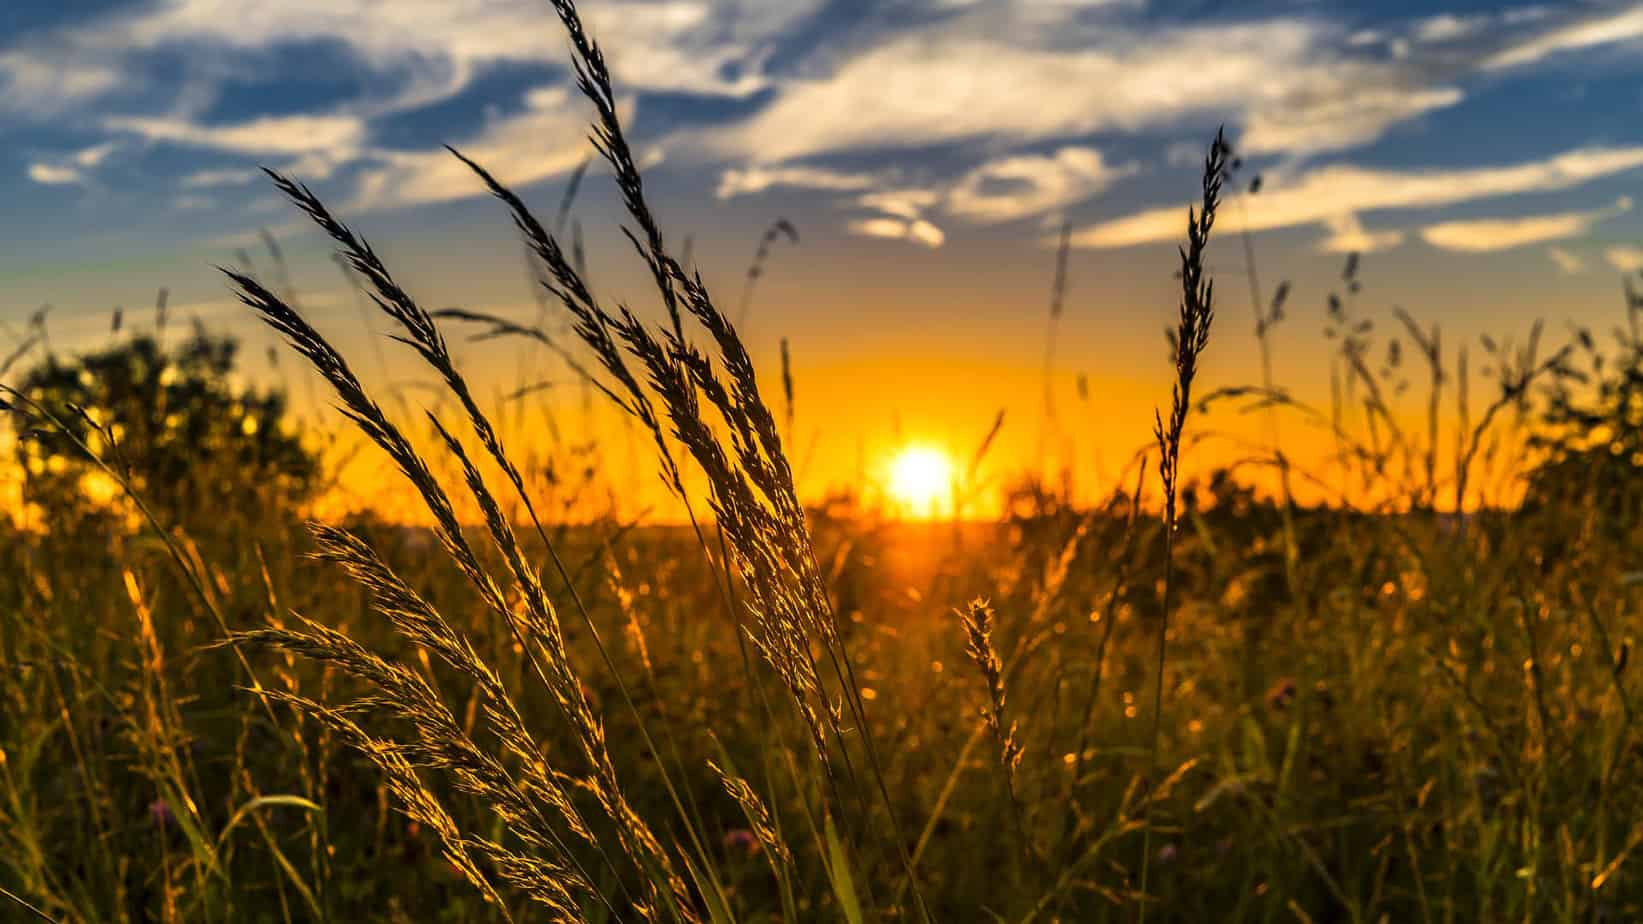 While South Africa's economy has grown, the agricultural GDP has shrunk by 3.2% in the past year. Photo: Supplied/Food For Mzansi